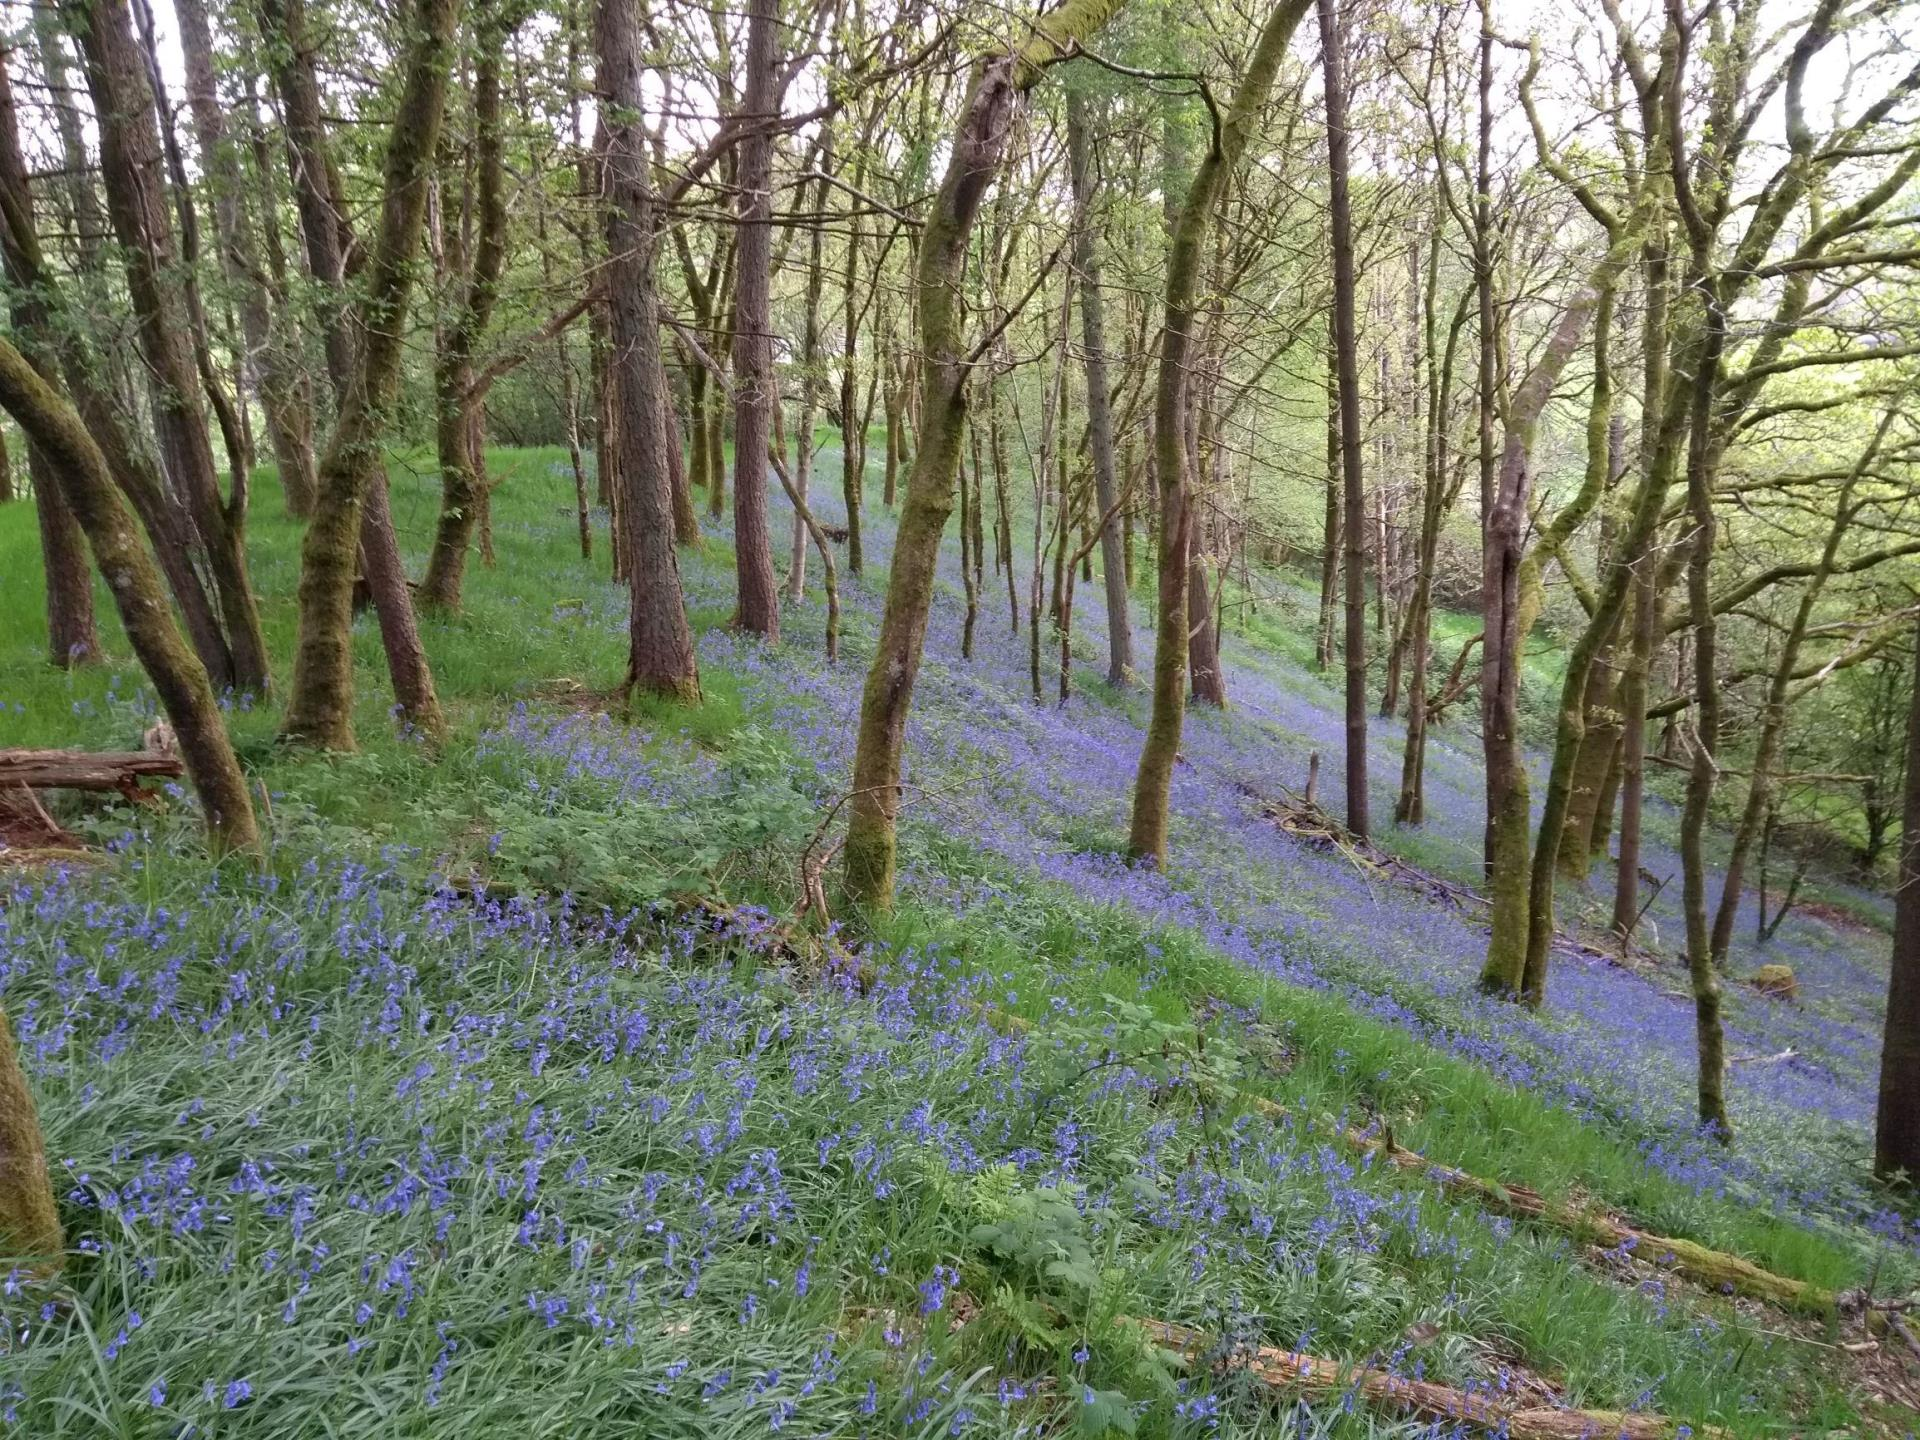 Blissful Bluebells in the Woods!